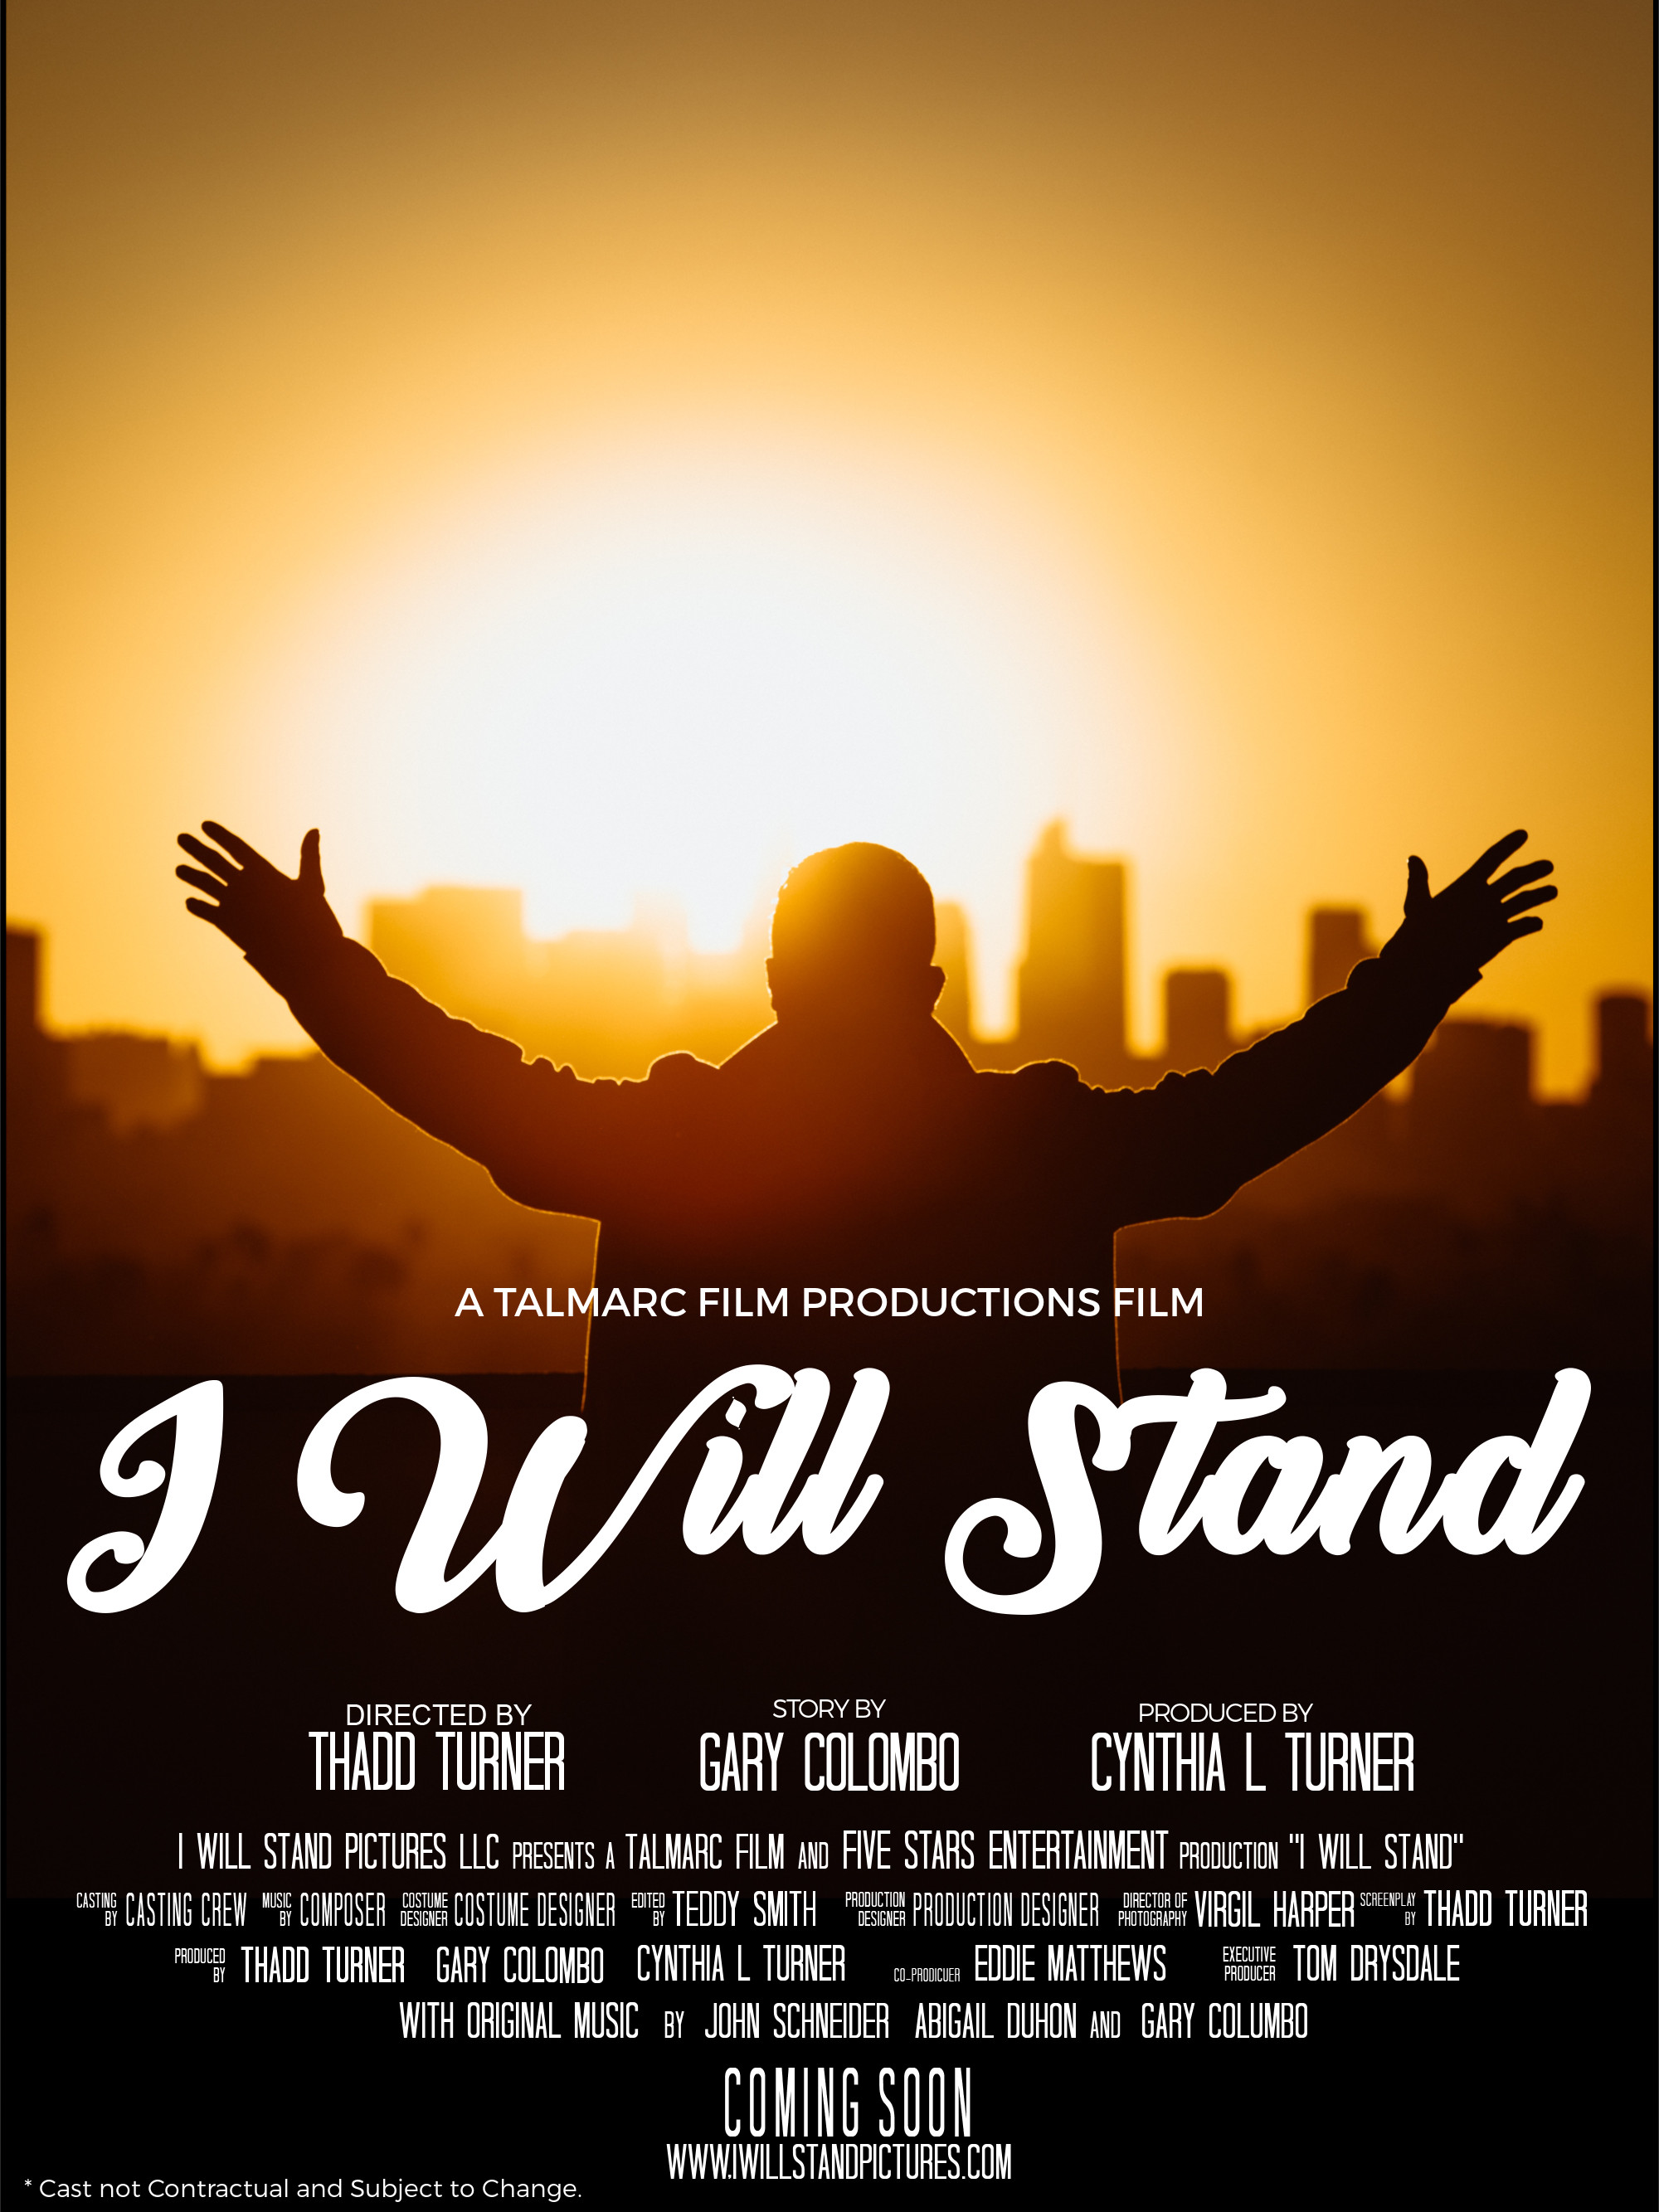 I WILL STAND Movie Poster no actors